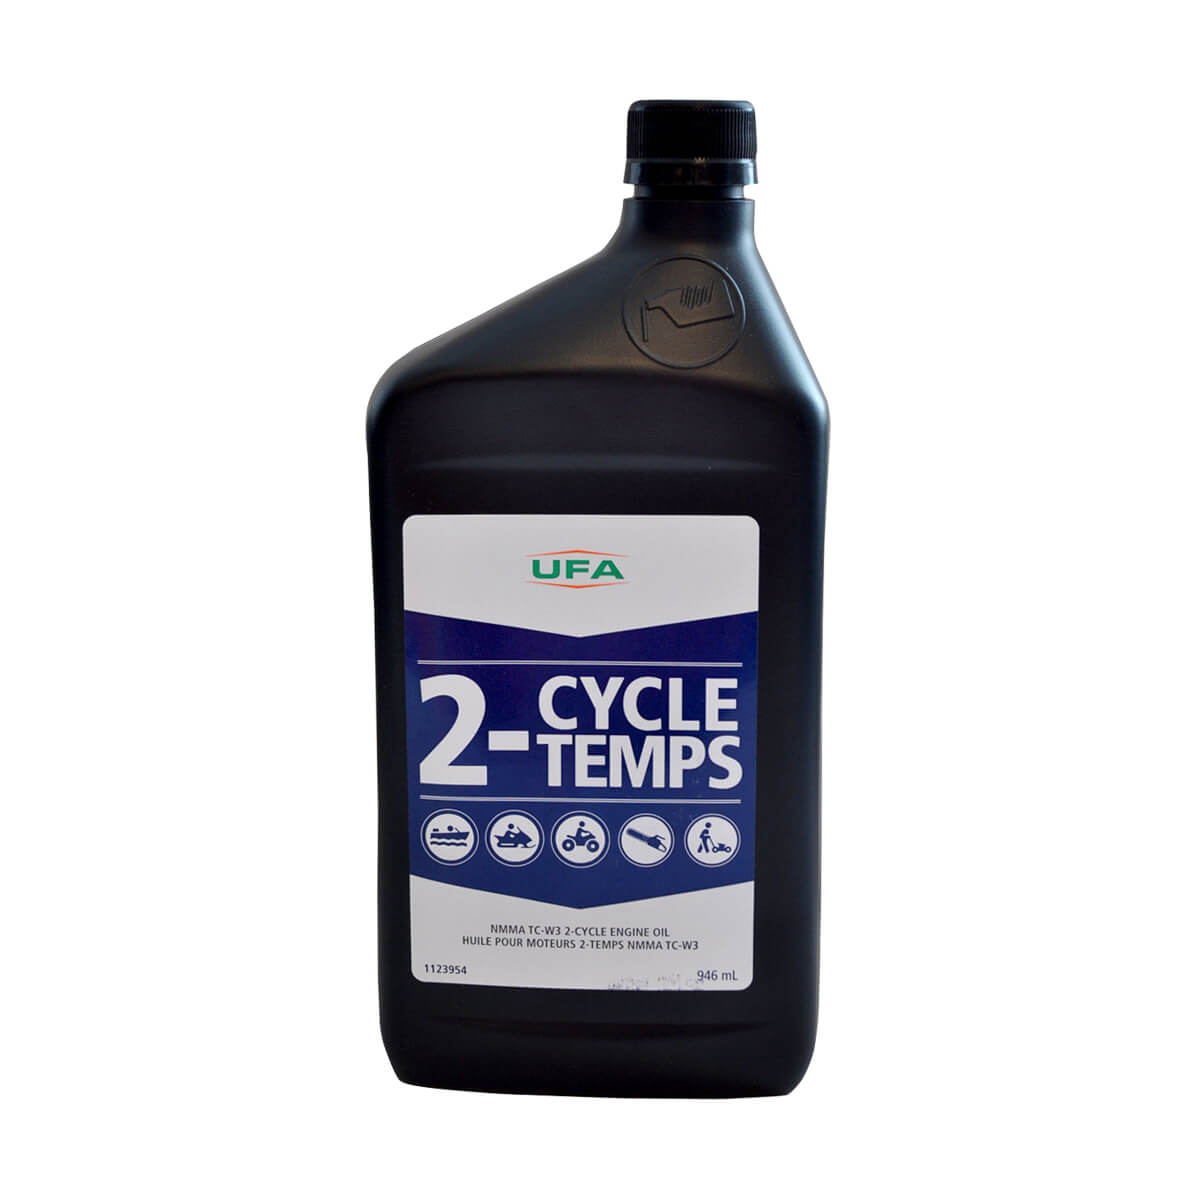 UFA 2-Cycle Engine Oil  - 946 ml